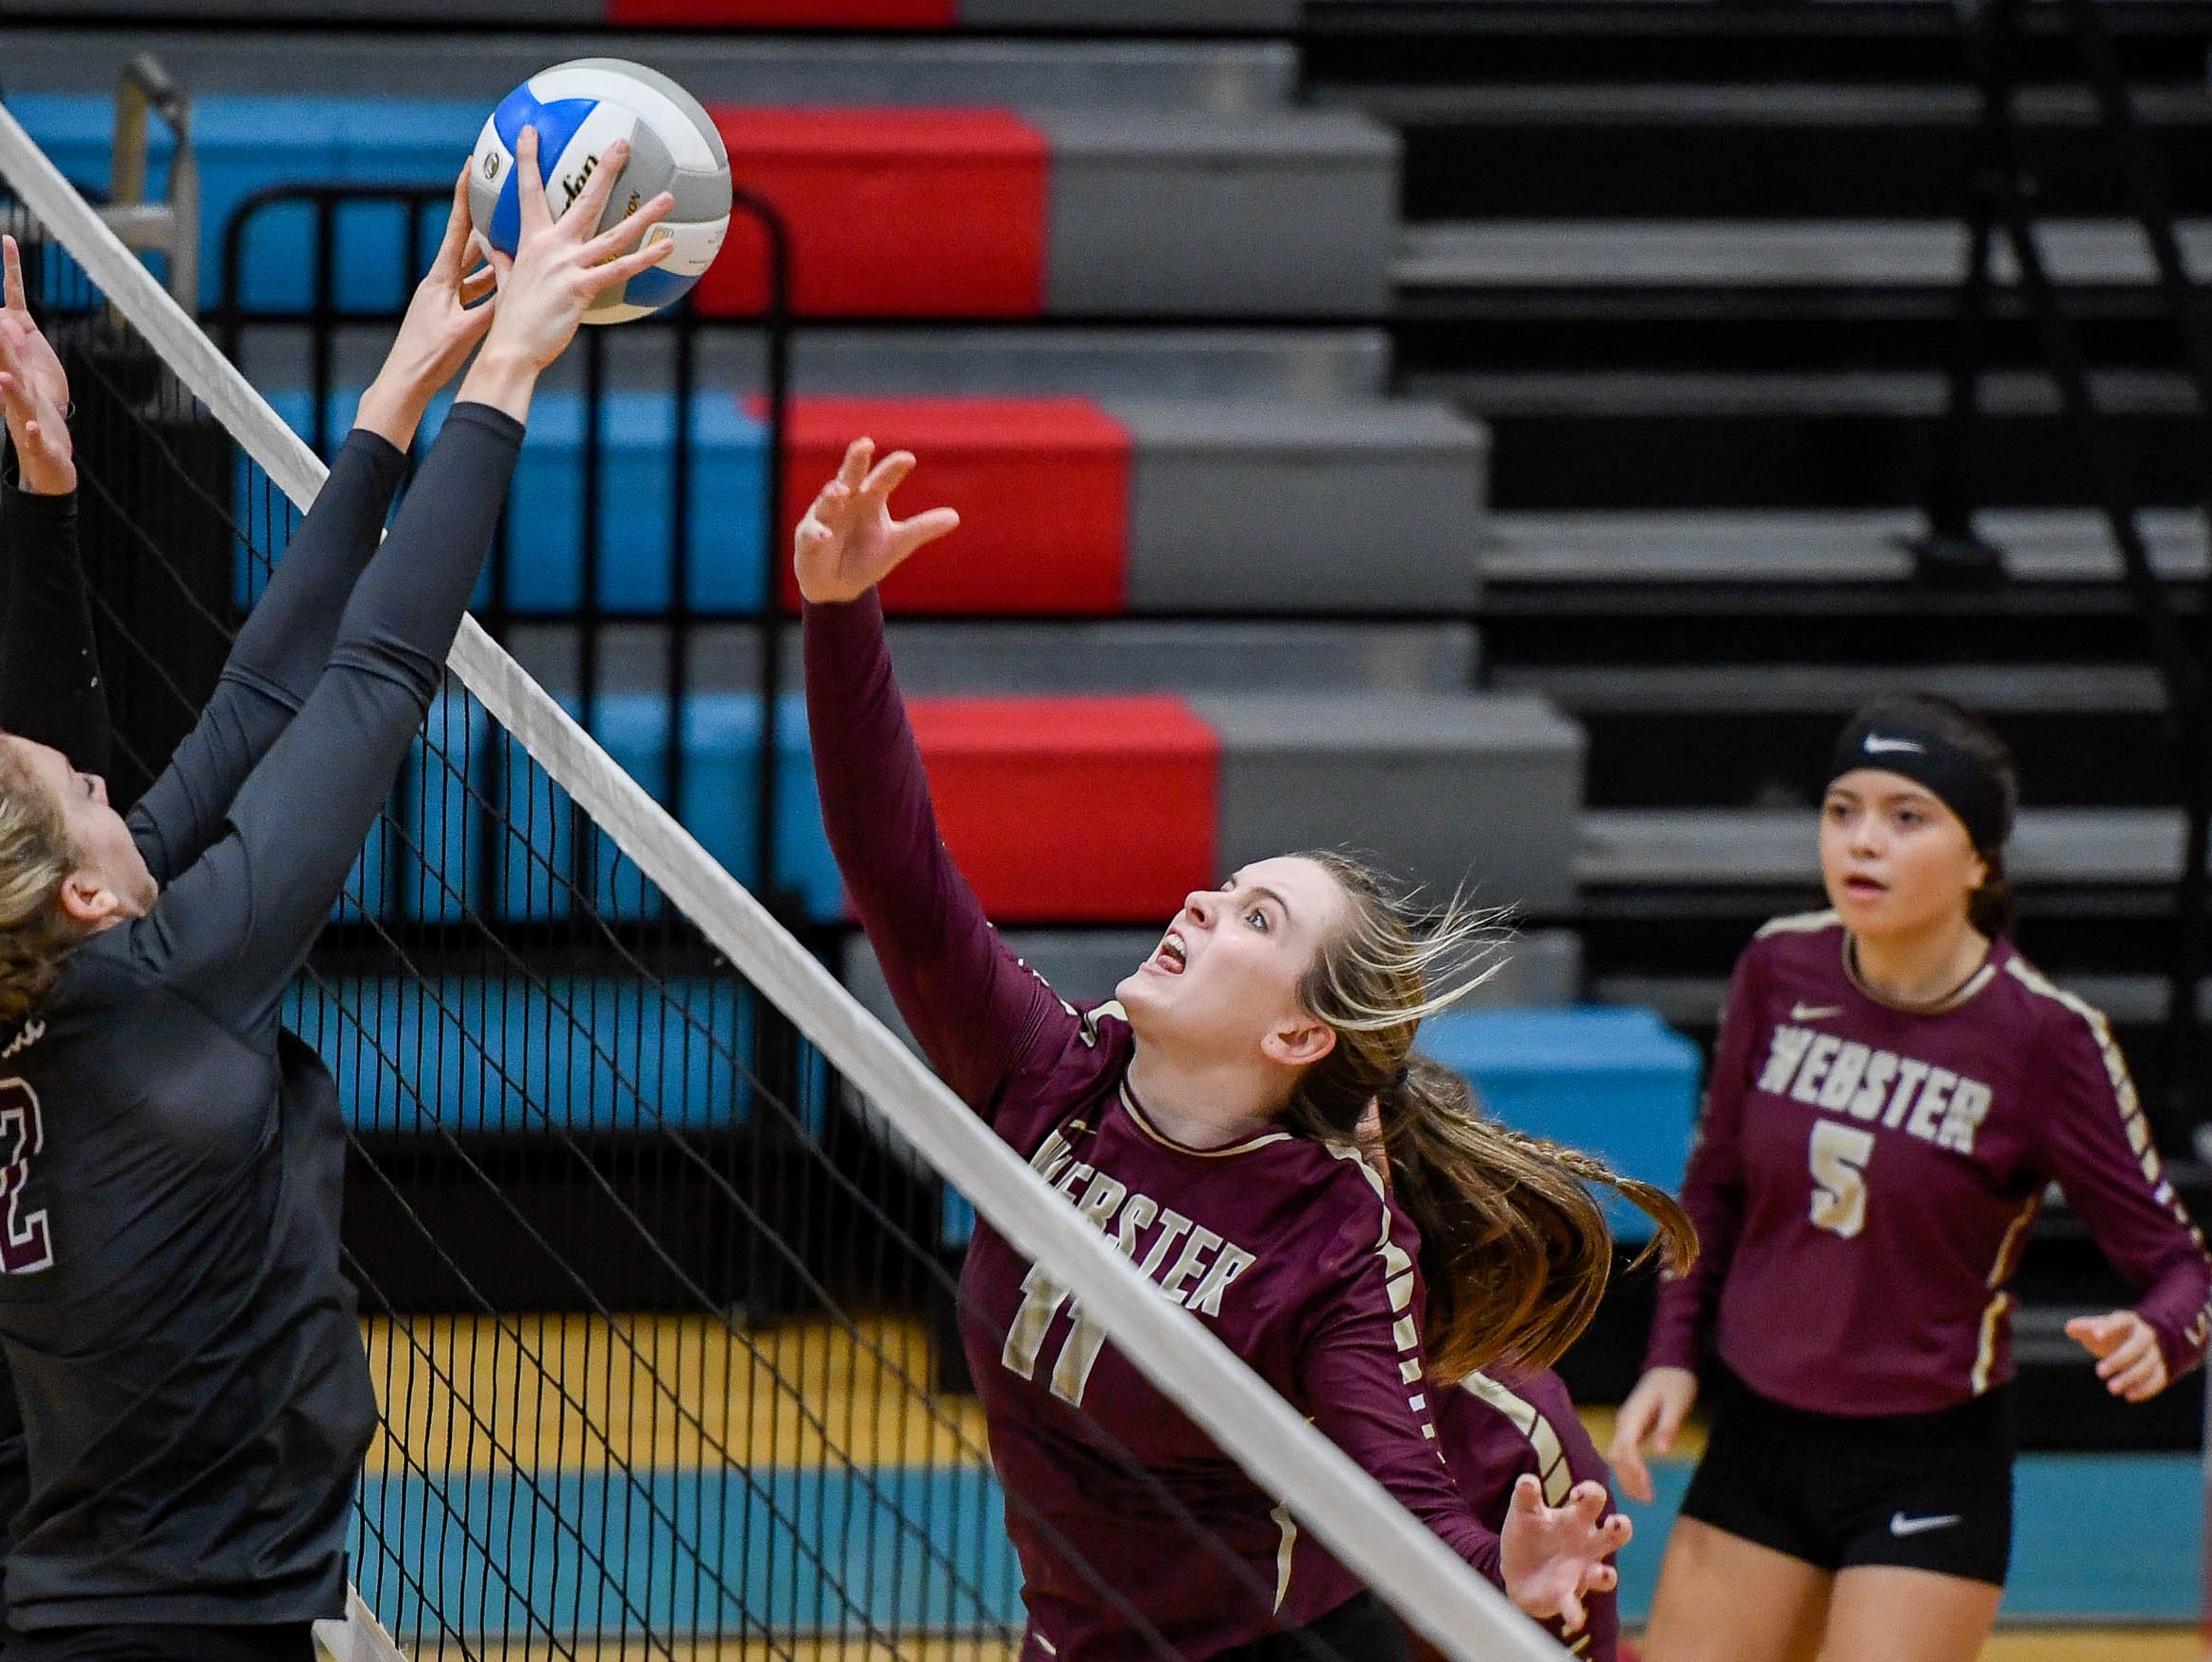 Henderson's Brooke Springer (2) blocks a shot from Webster's Maggie Jones (11) as the Henderson County Lady Colonels play the Webster County Lady Trojans in the District Volleyball Tournament championship match in Morganfield, Tuesday, October 9, 2018.